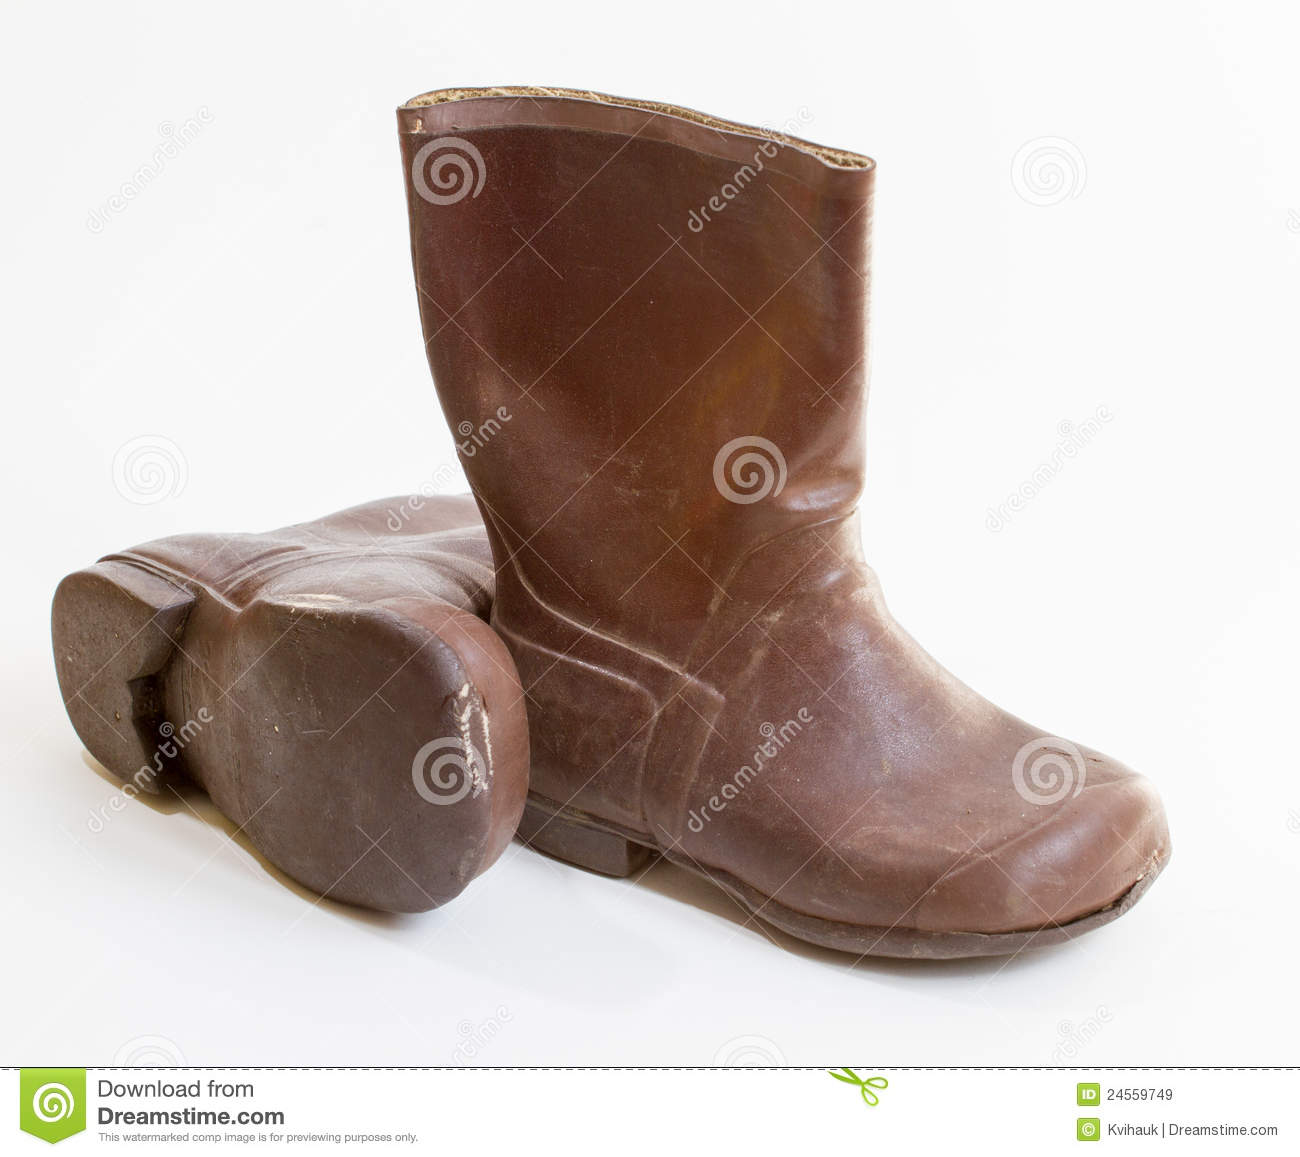 small brown boots royalty free stock images image 24559749